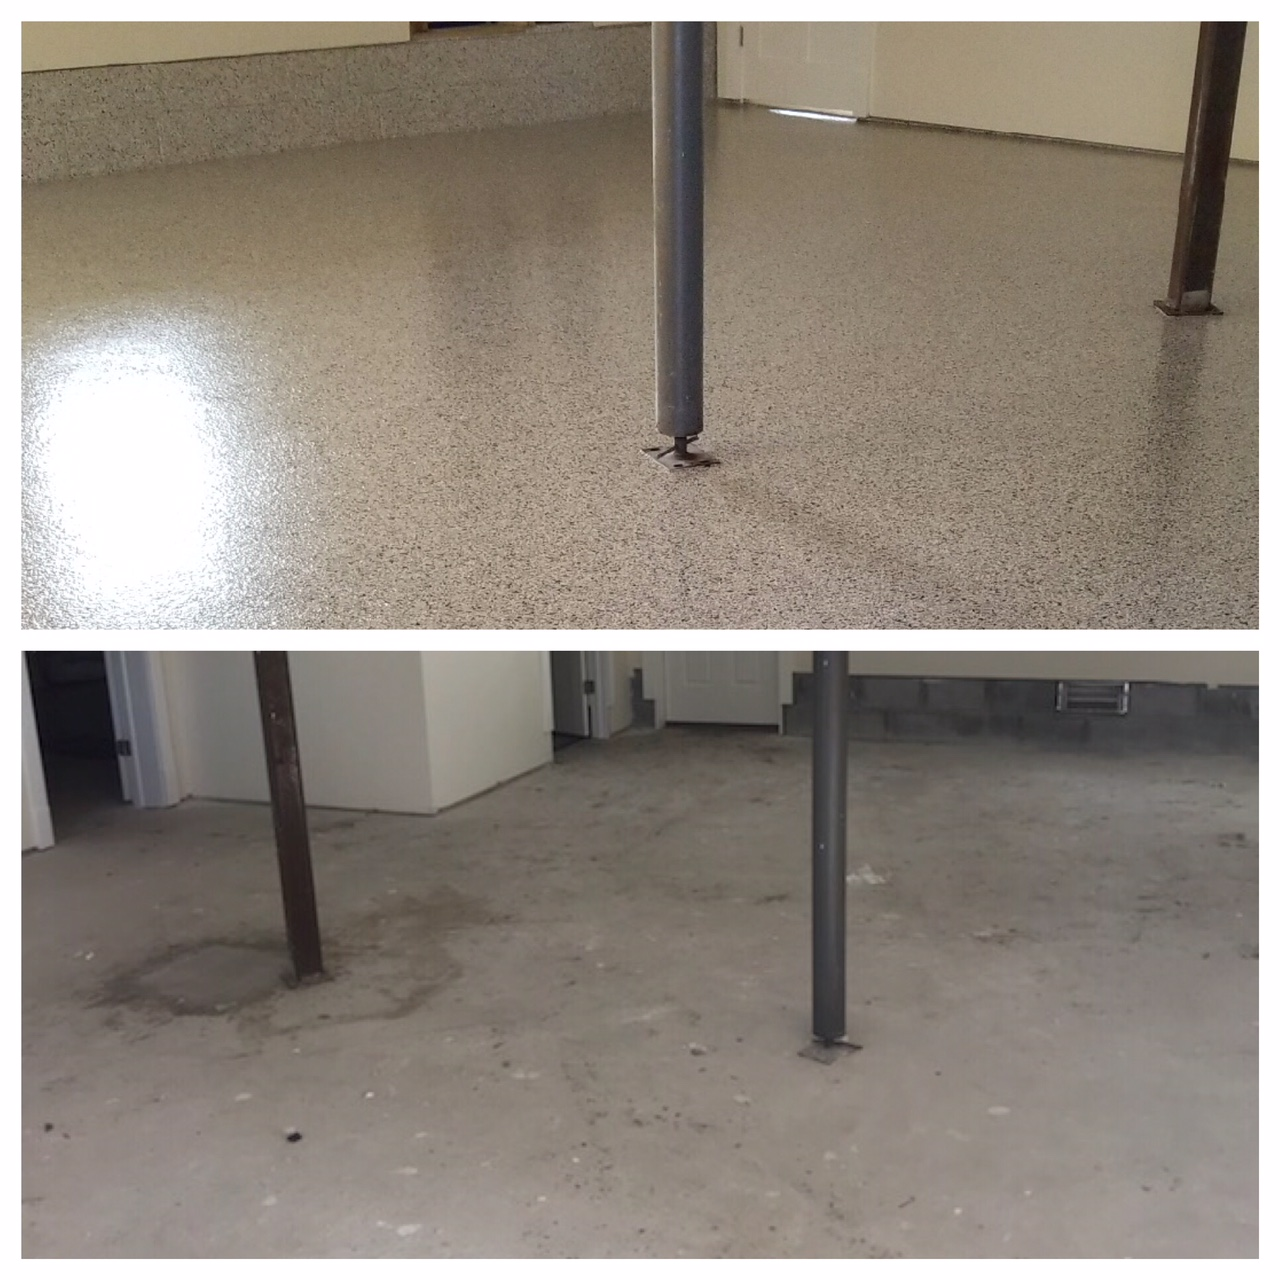 Garage Floor Coating of New Jersey image 14